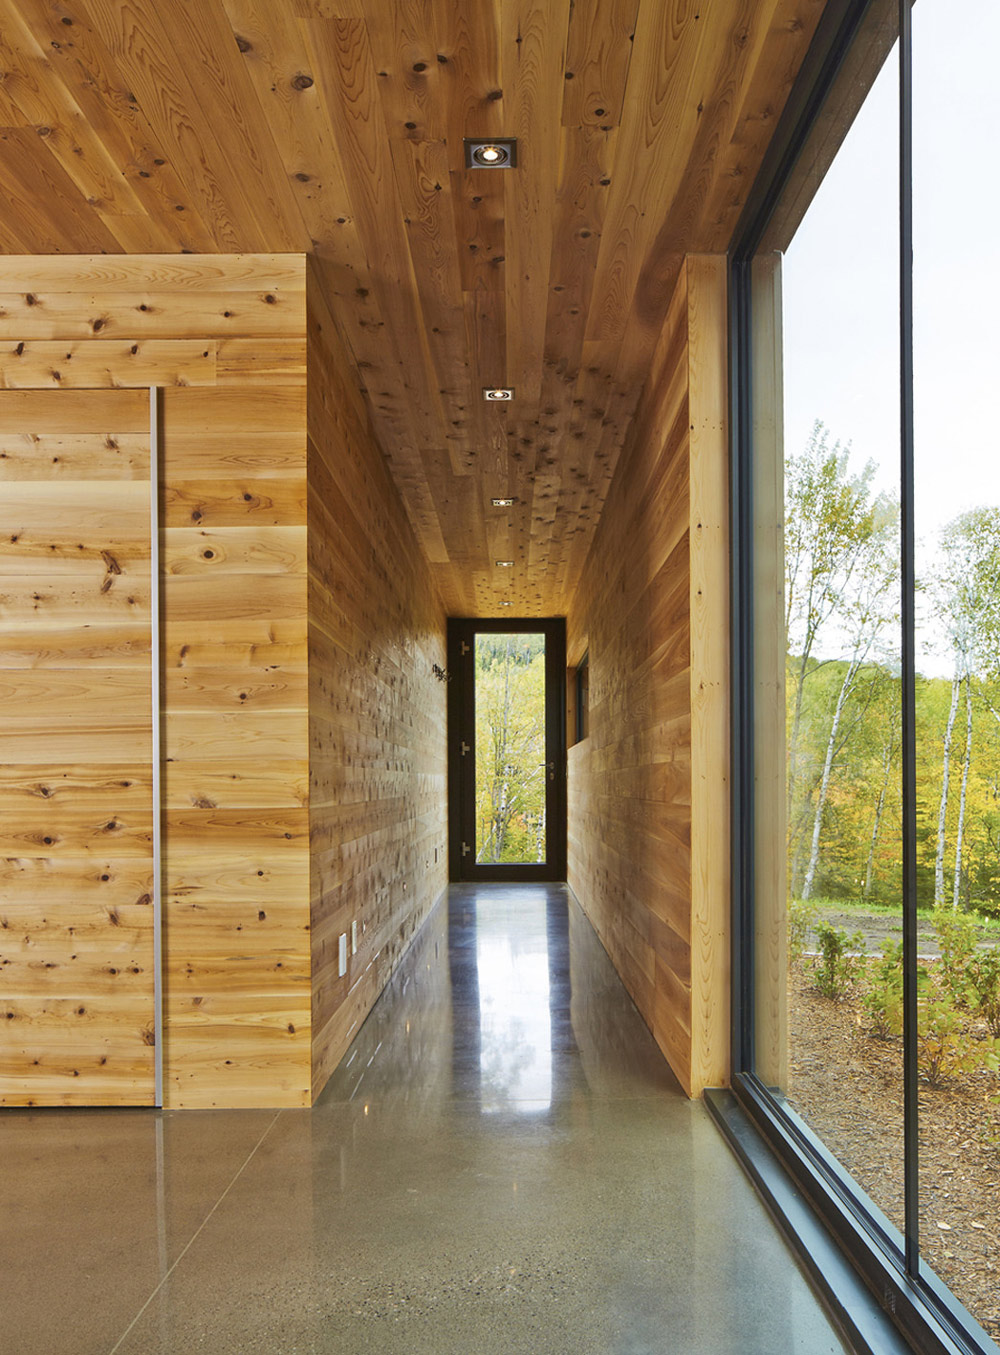 Entrance Hall, Glass Sliding Doors, Malbaie VIII Residence in Charlevoix